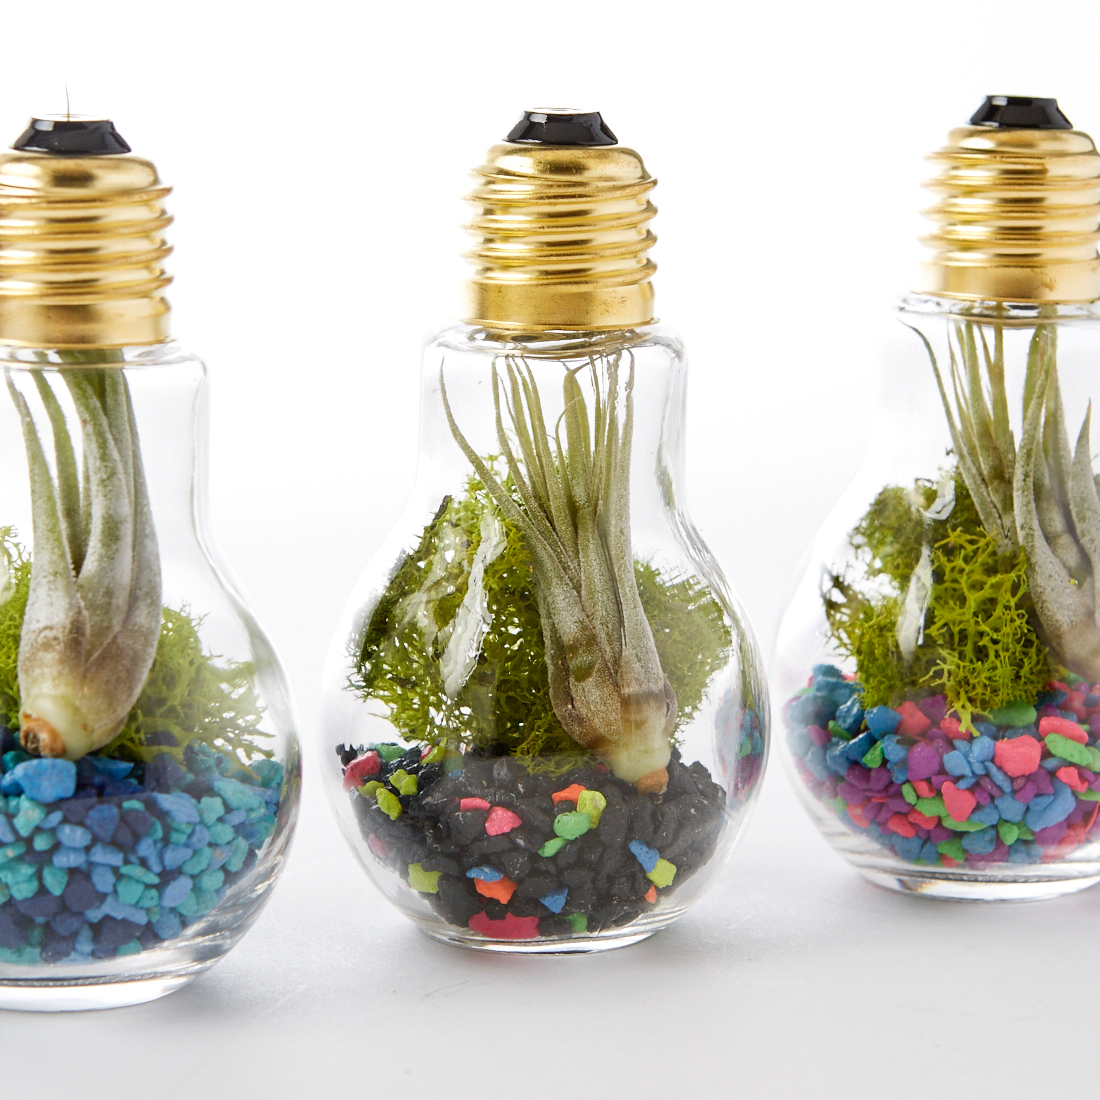 3 light bulb-terrariums